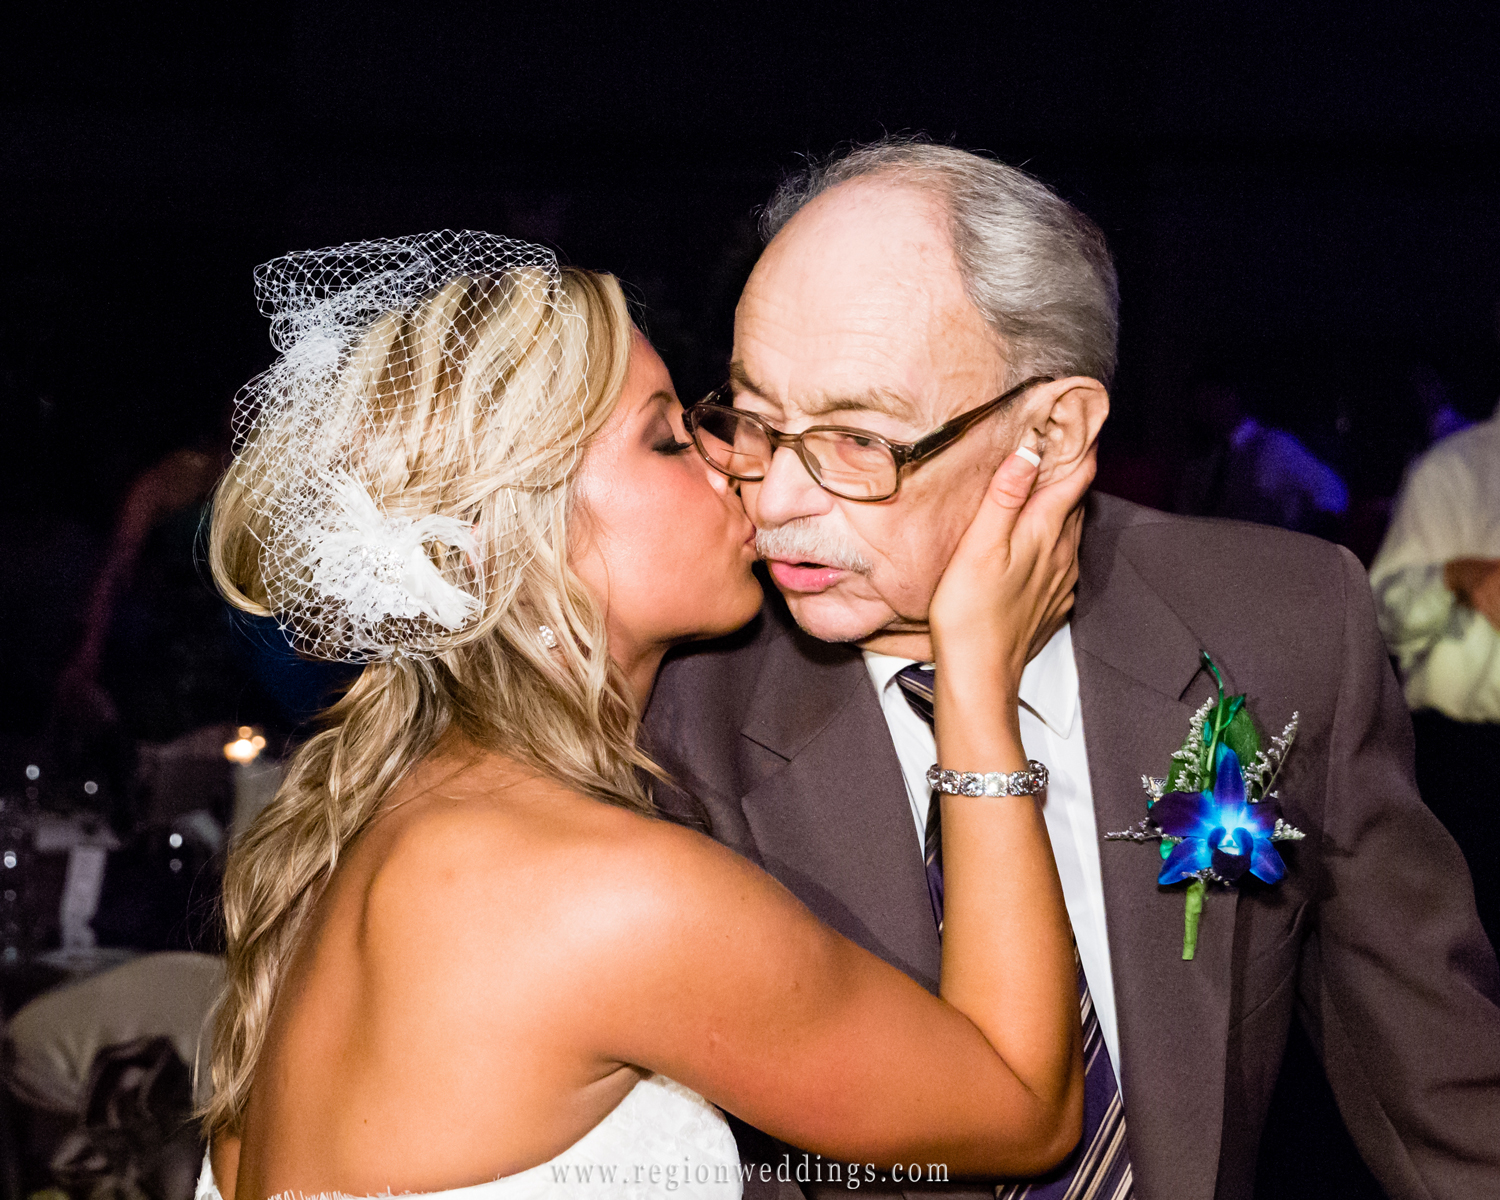 The bride gives her grandfather a kiss after he surprises her on the dance floor.